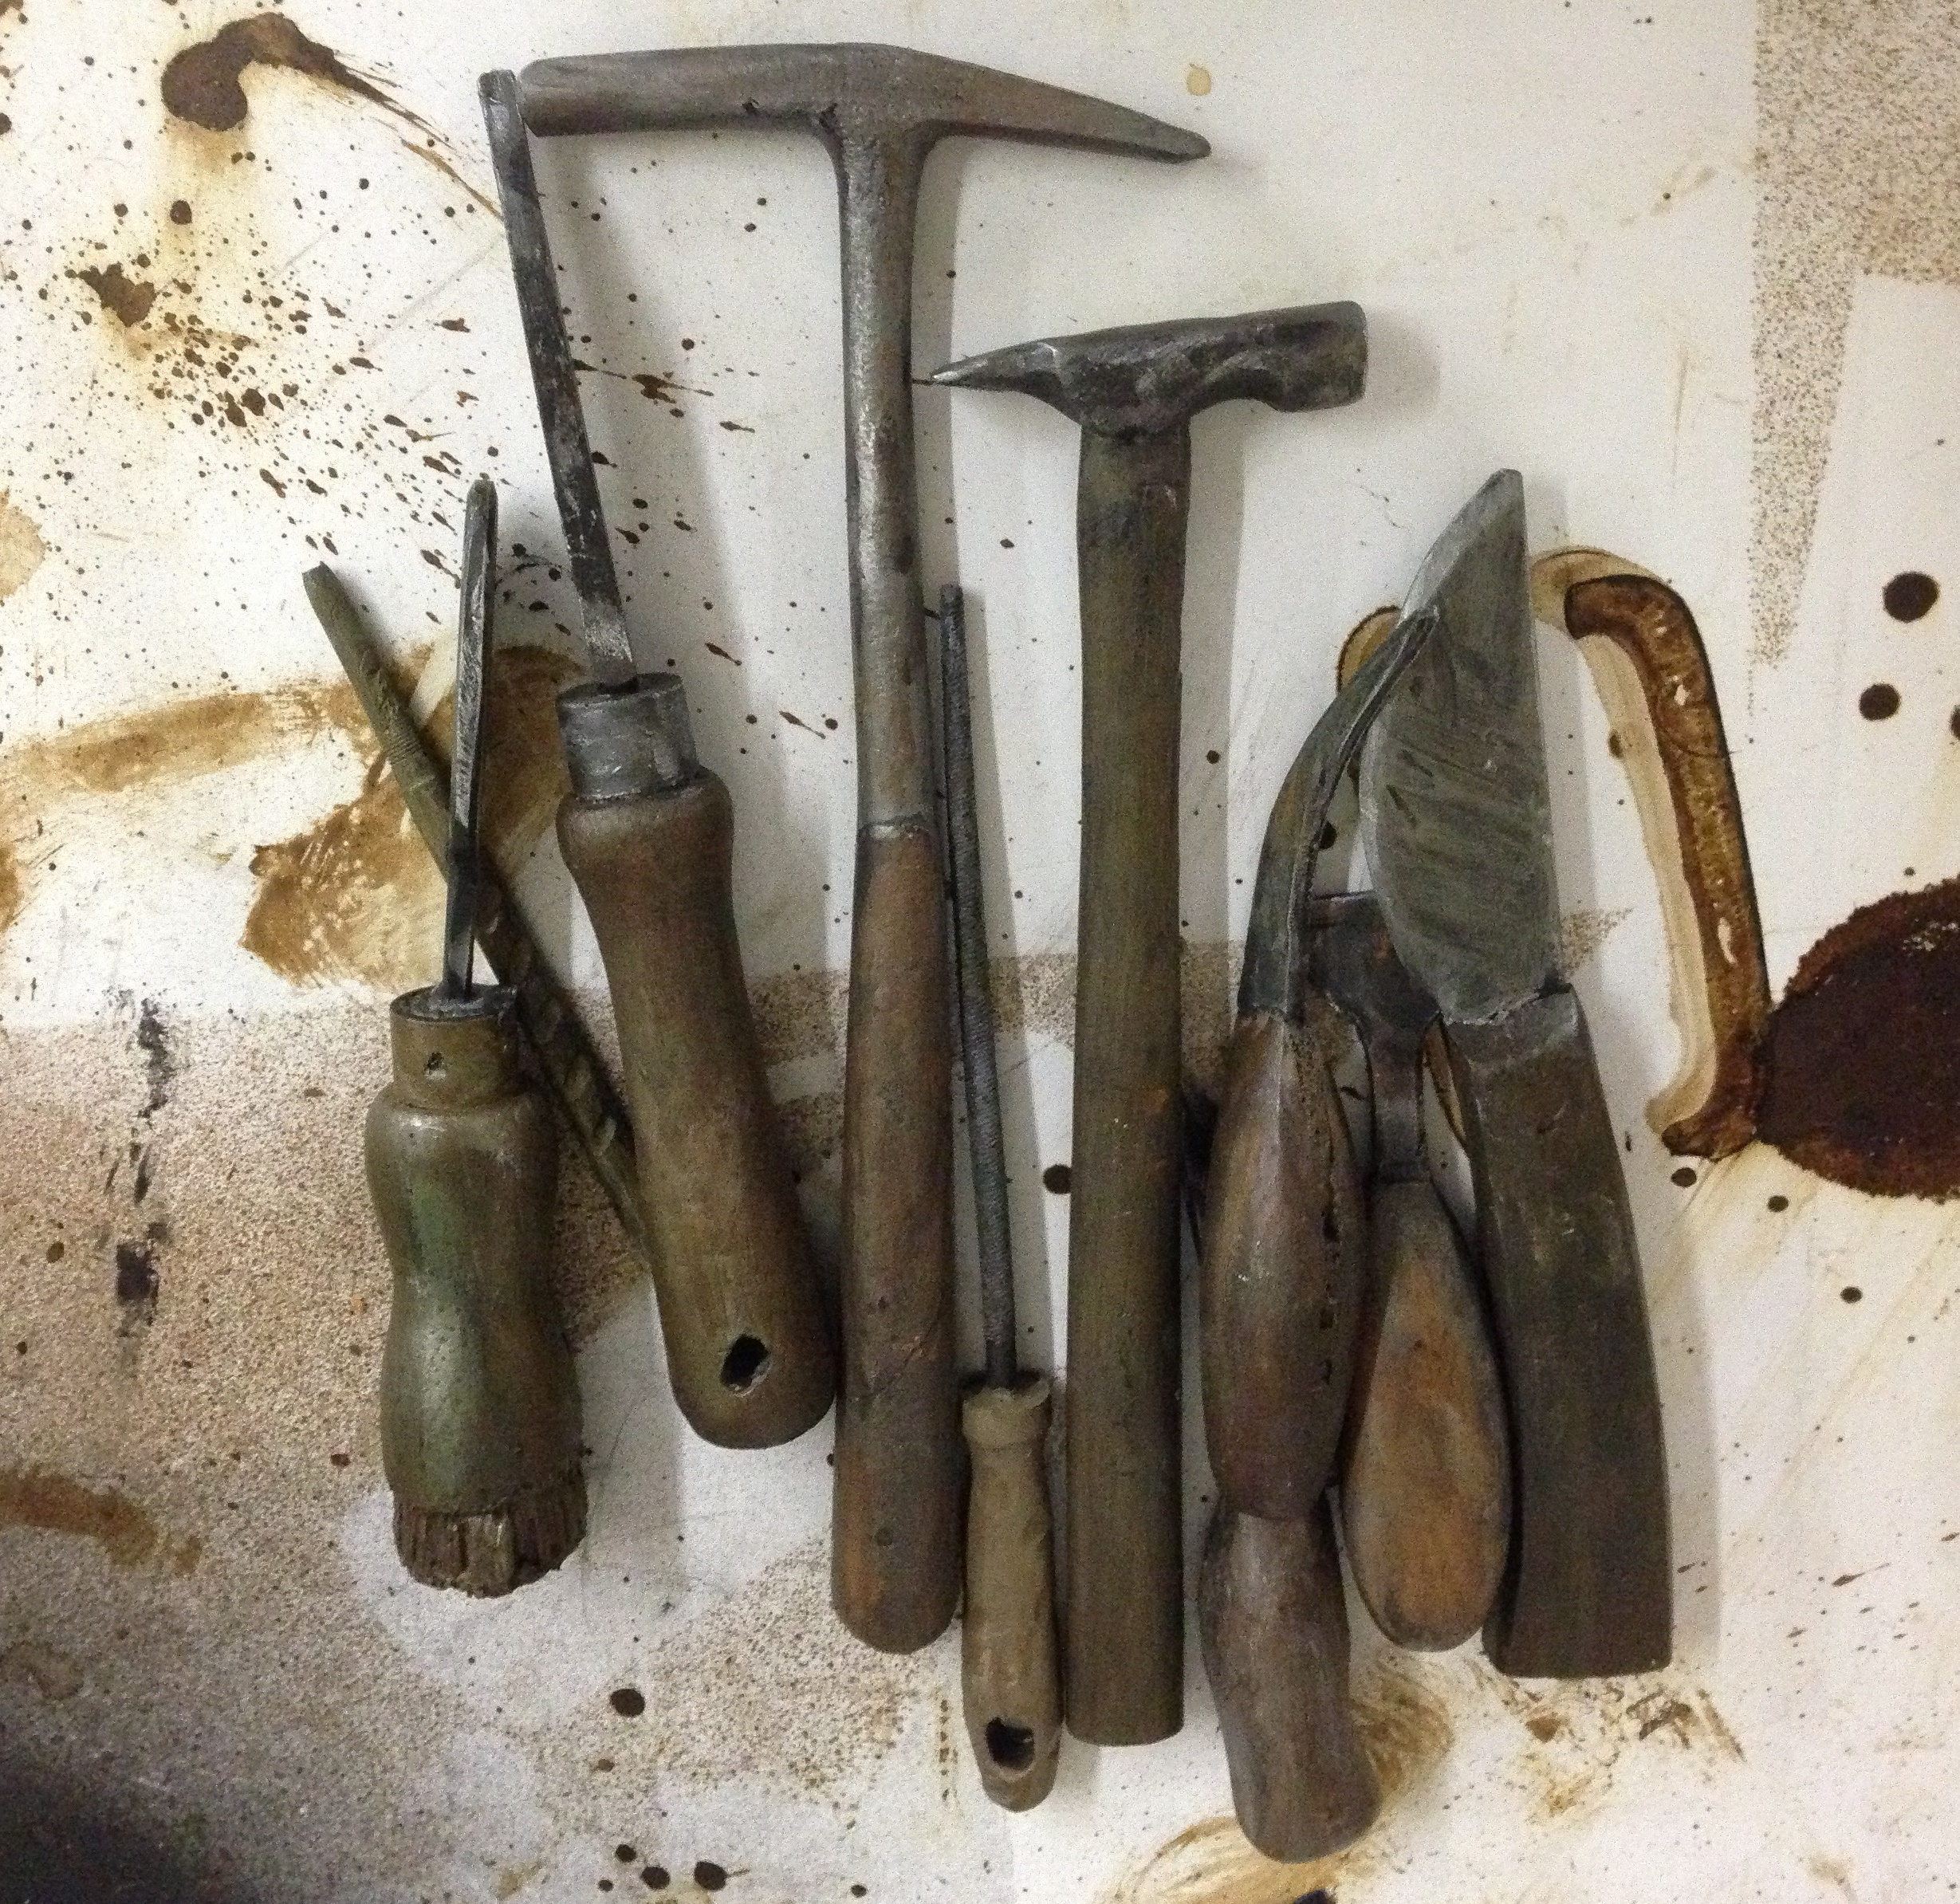 Fabricated tools